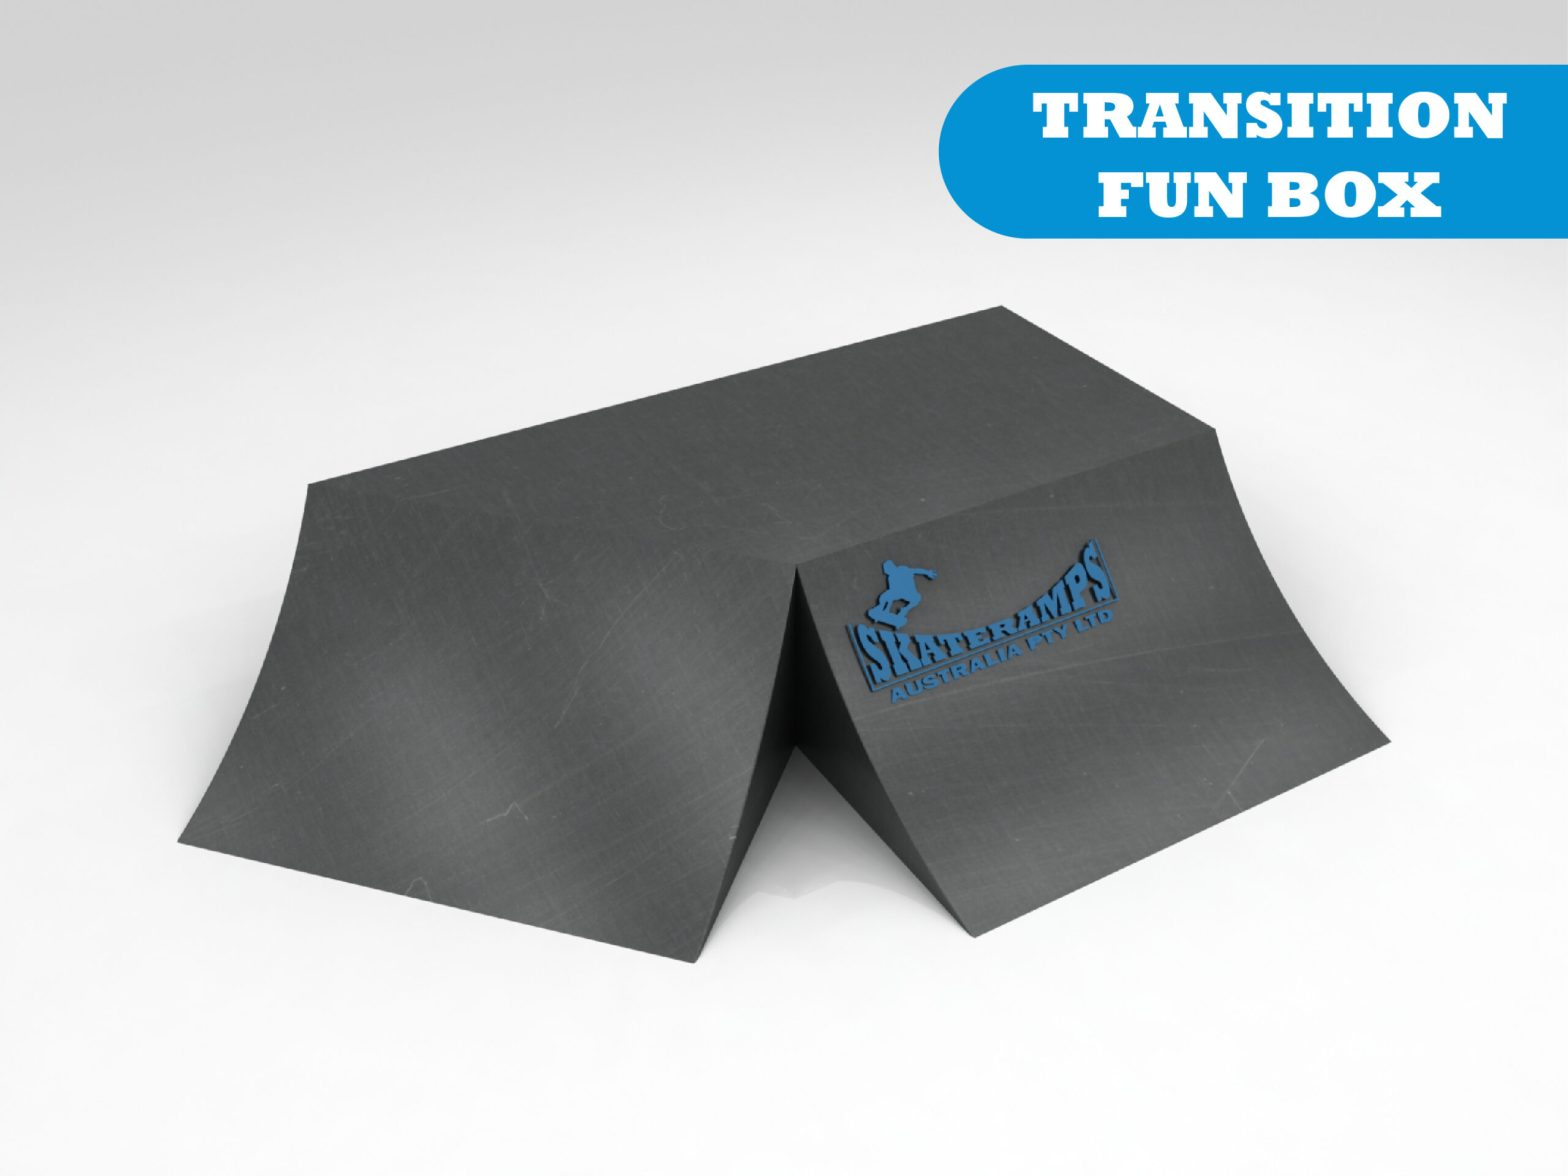 The transition funbox skate ramp module is one of the modules available for councils and commercial organisations from Skateramps Australia